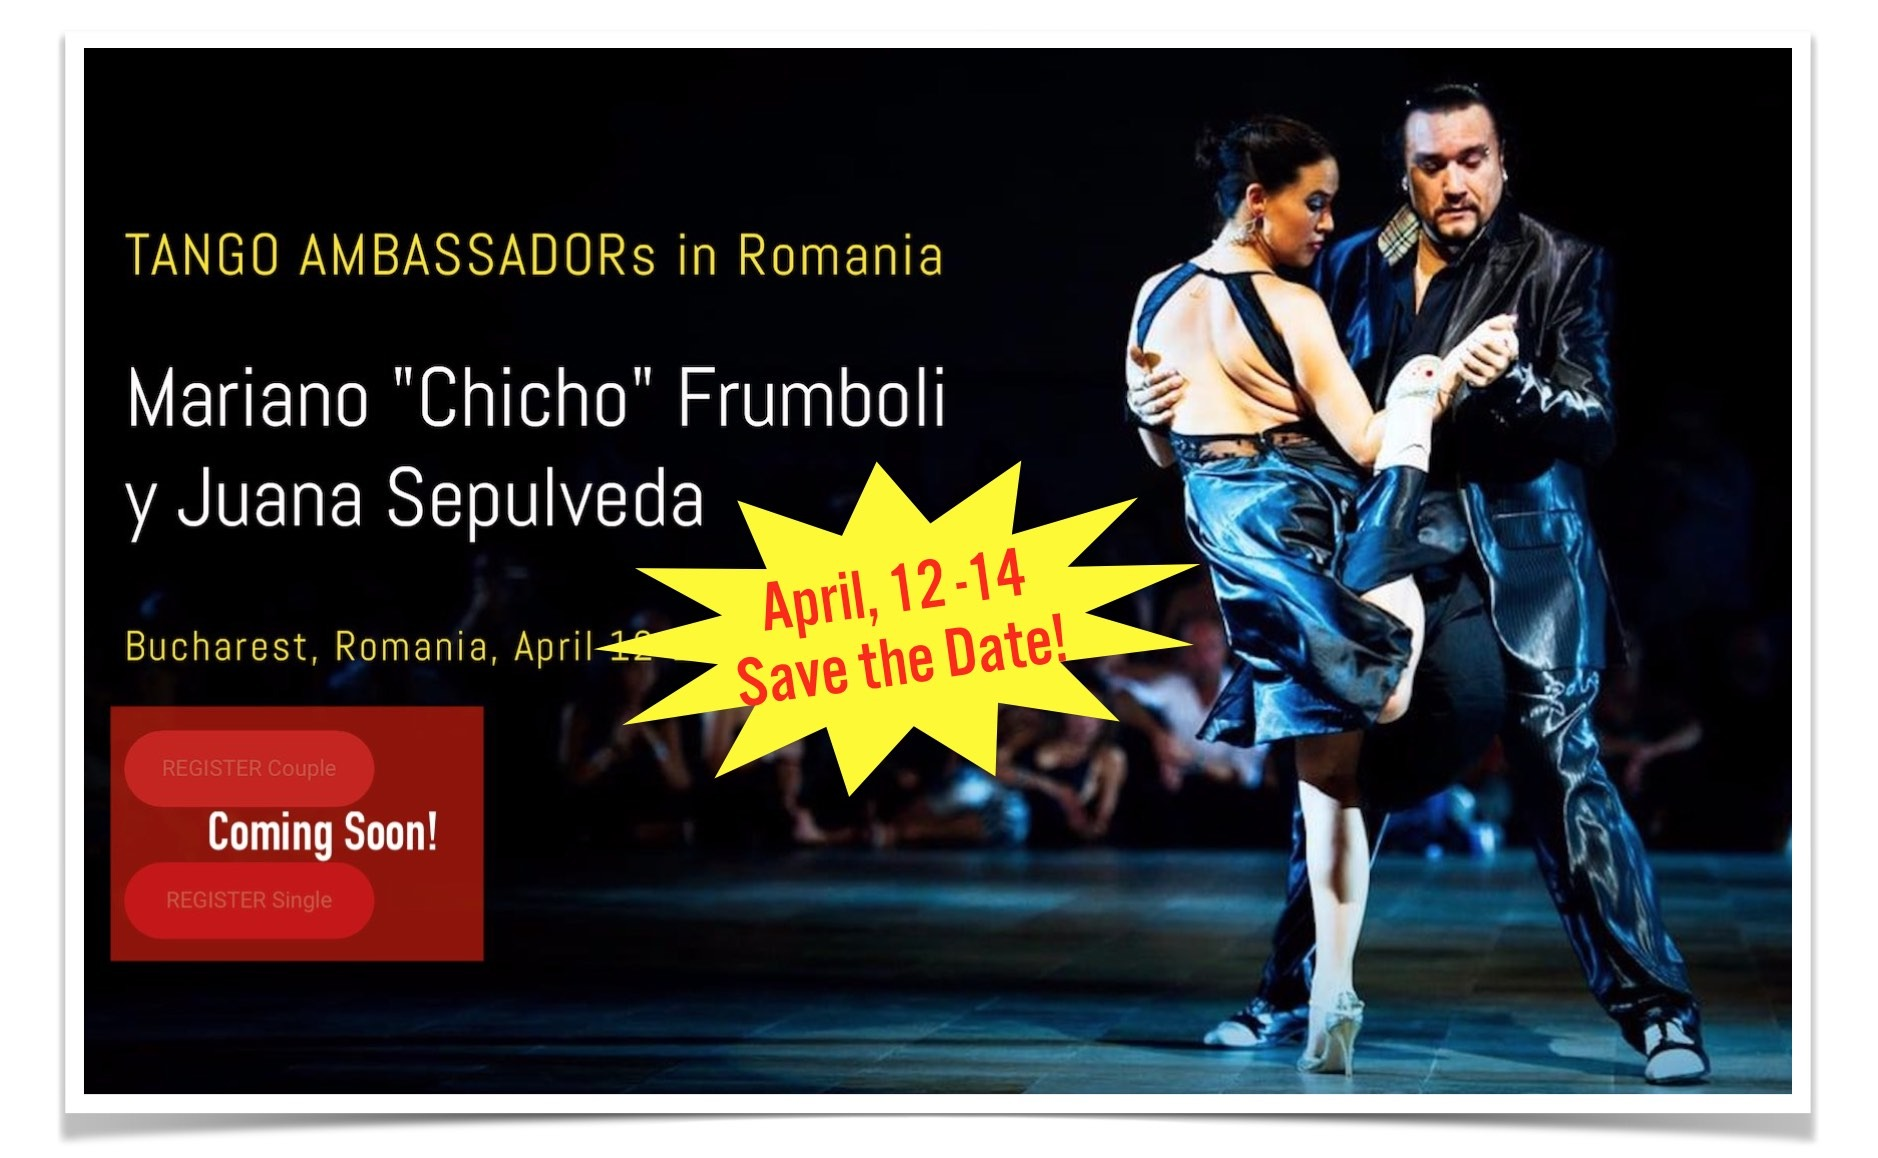 chicho-y-juana-in-romania-tango-ambassadors-tangent-april-save-the-date